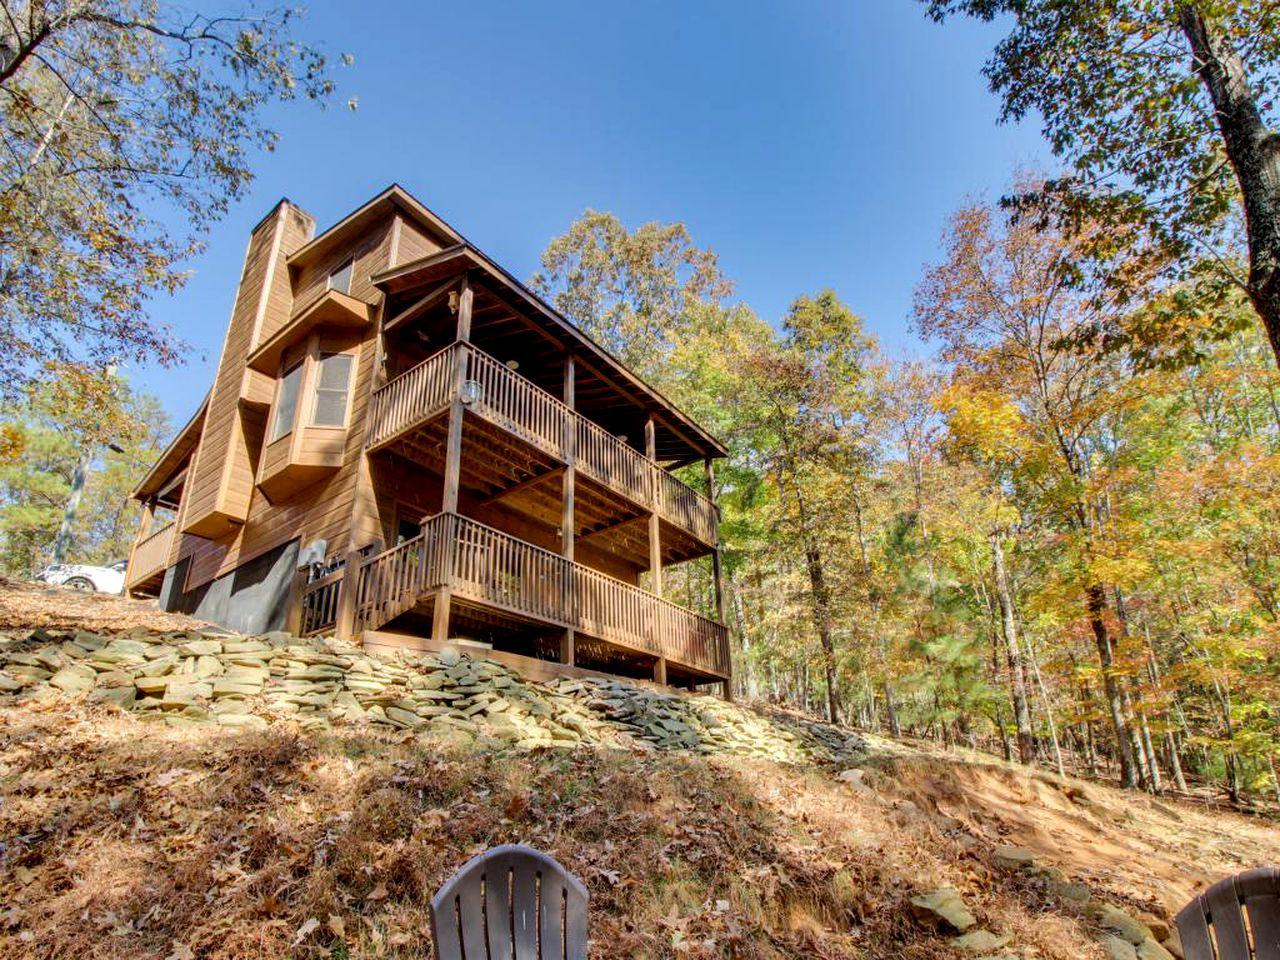 Three-story log cabin rental surrounded by trees in autumn in Ellijay, Georgia.